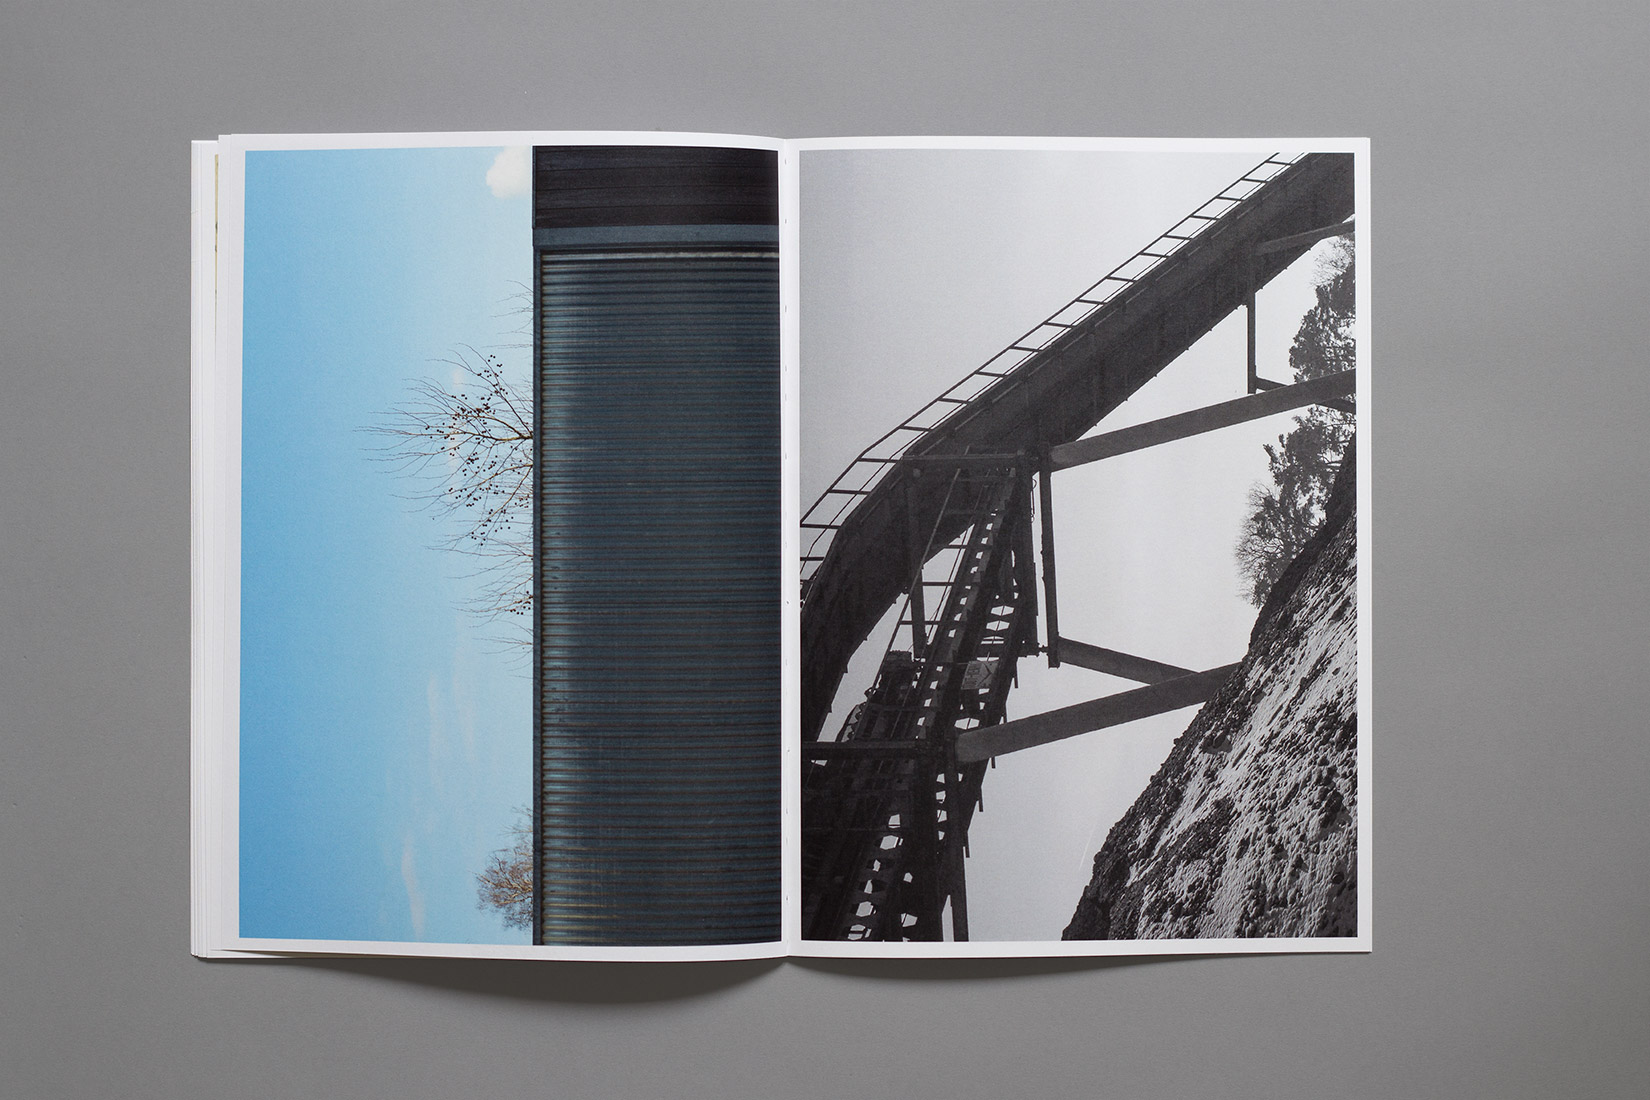 Zihlbrücke, diploma, book, graphic design, photography, geometry, factory Buhler Marin